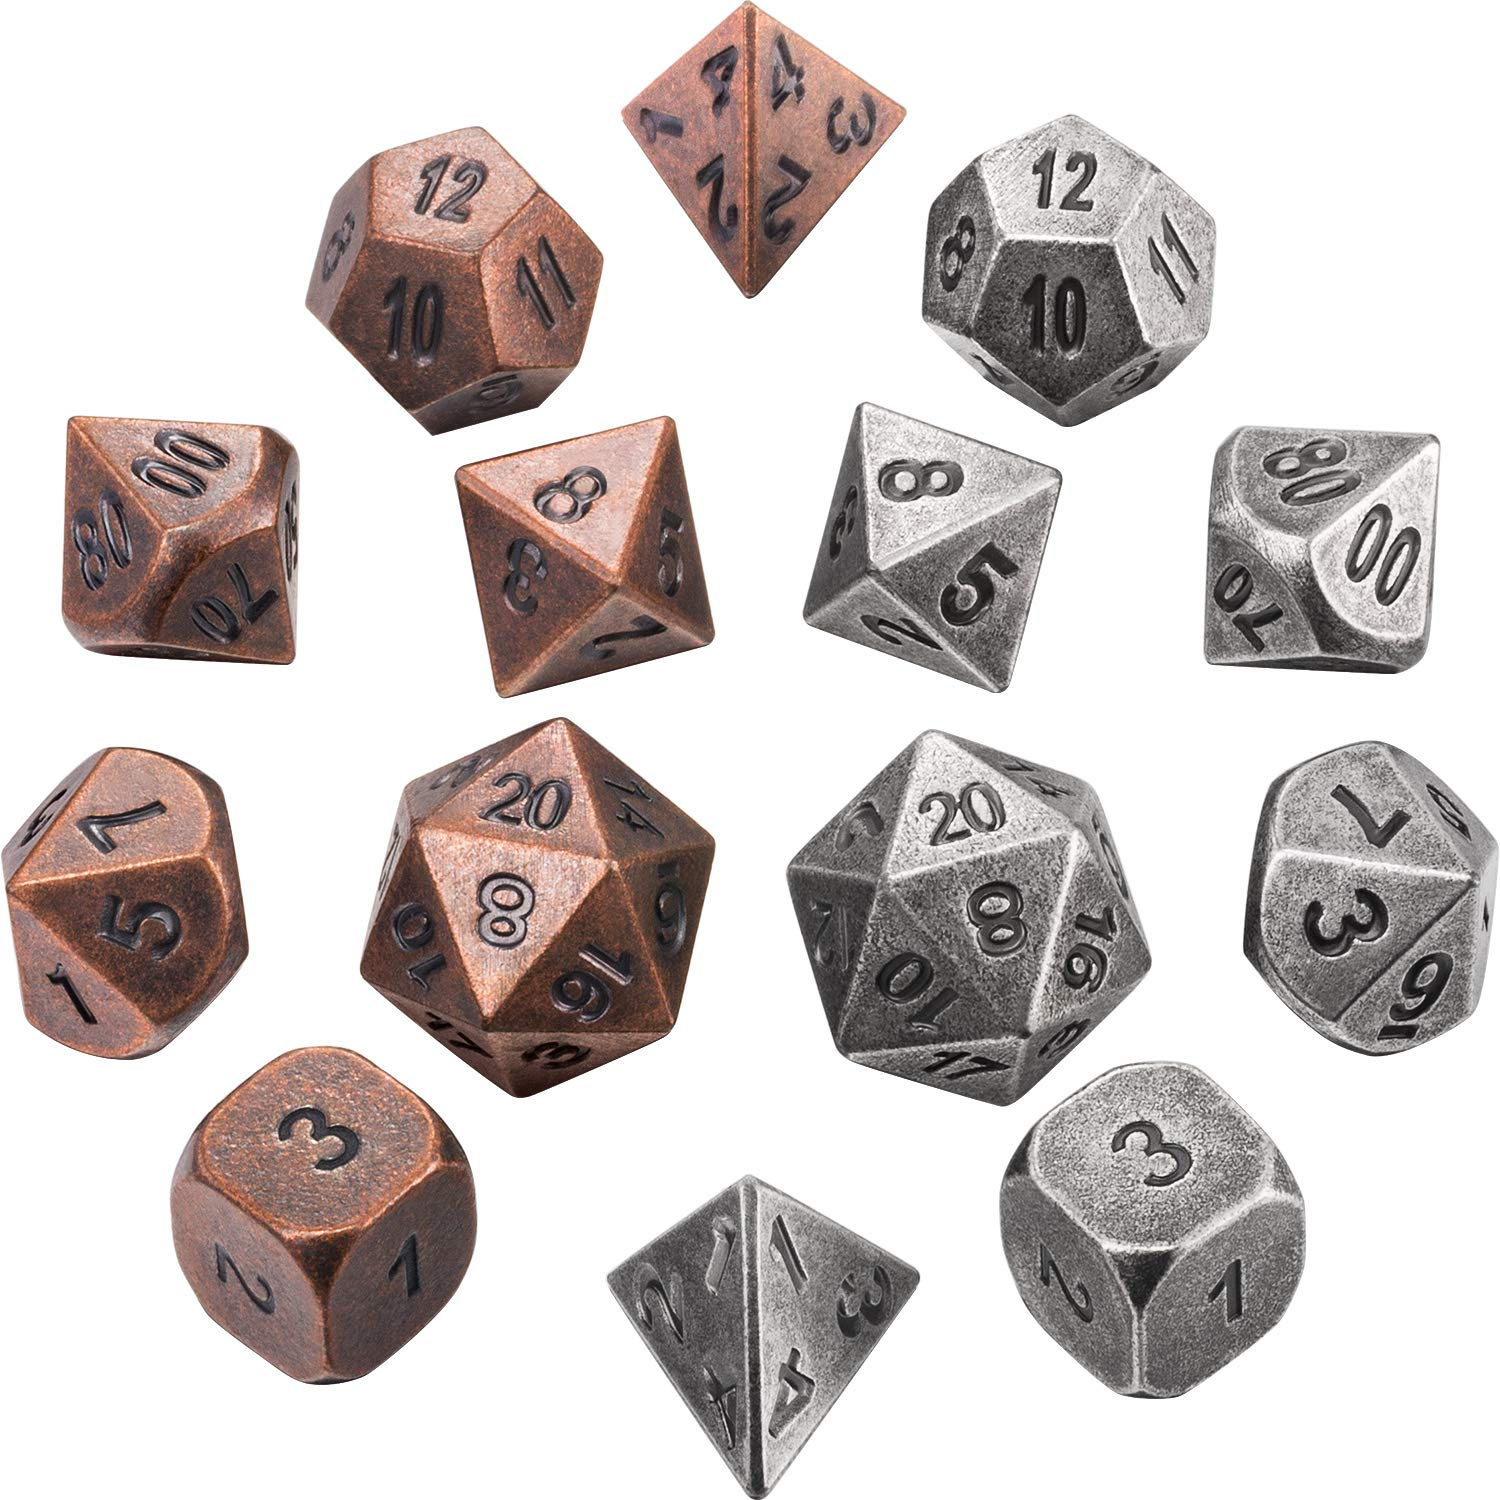 Jovitec 14 Pieces Metal Solid Zinc Alloy Game D&D Dices Set Durable Polyhedral Dice with Printed Numbers and Velvet Storage Bags for Game, Dungeons and Dragons, RPG, Math Teaching